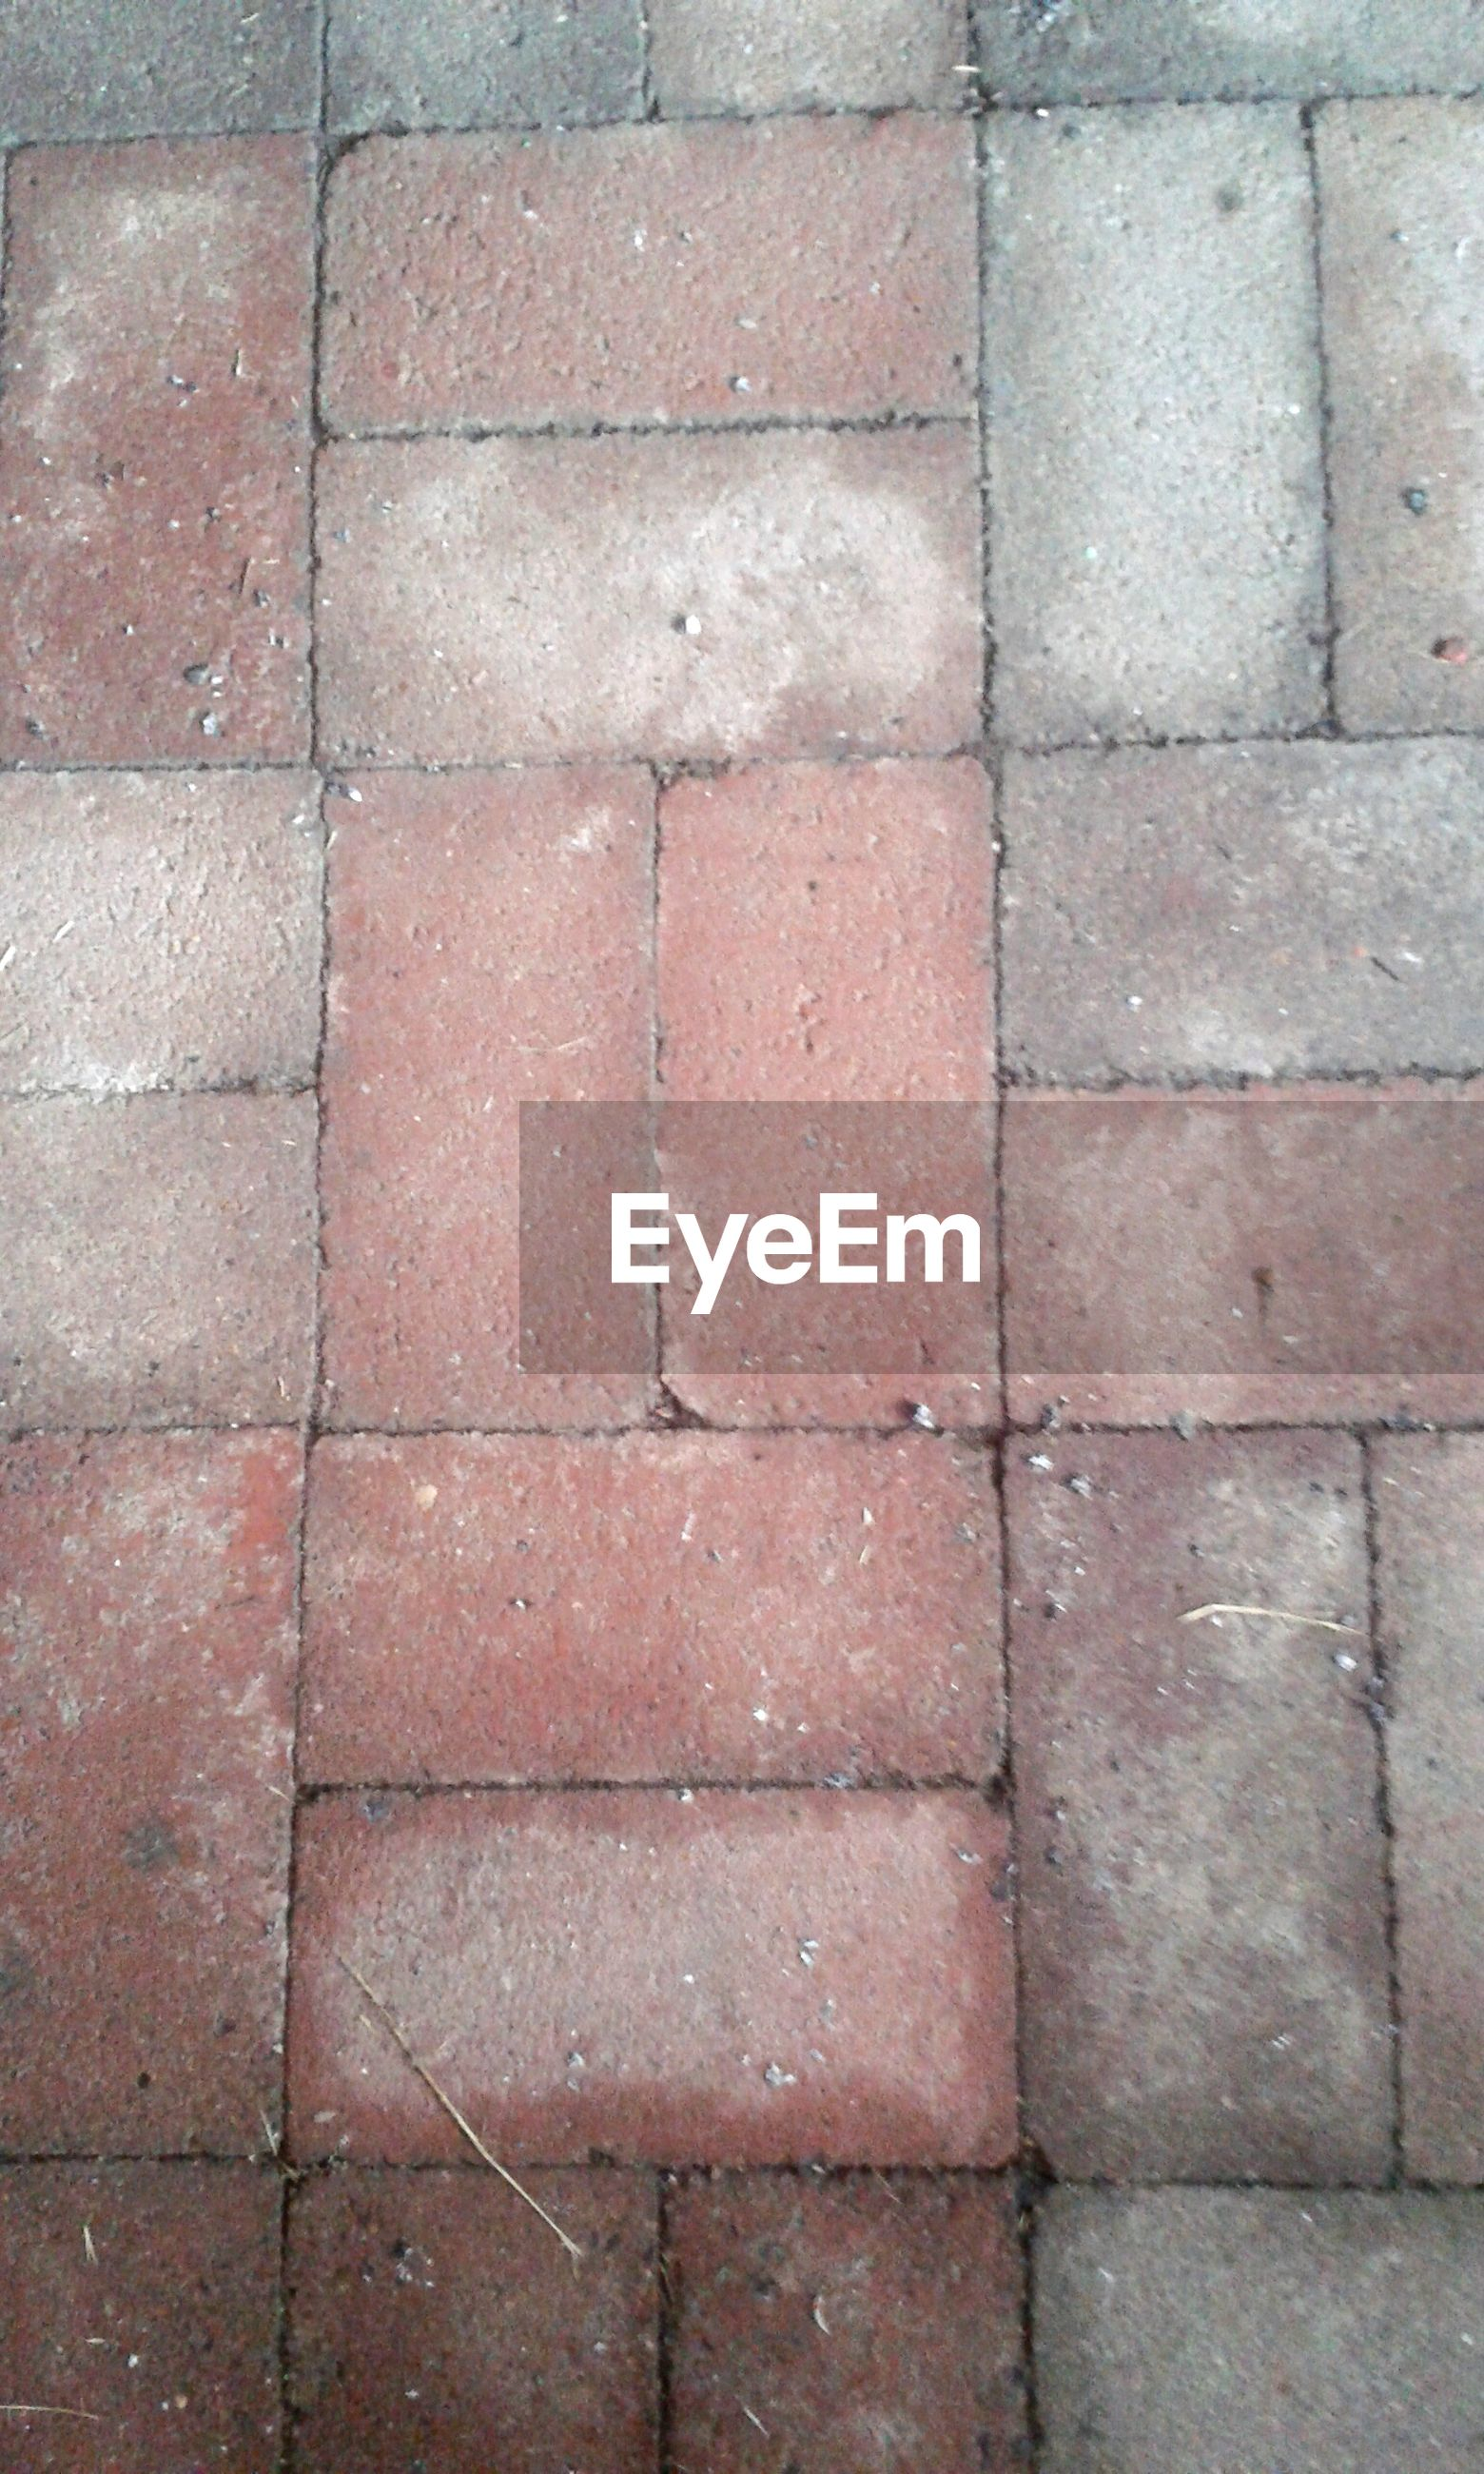 full frame, backgrounds, textured, pattern, cobblestone, paving stone, brick wall, close-up, wall - building feature, no people, outdoors, day, high angle view, street, detail, tiled floor, repetition, footpath, built structure, sidewalk